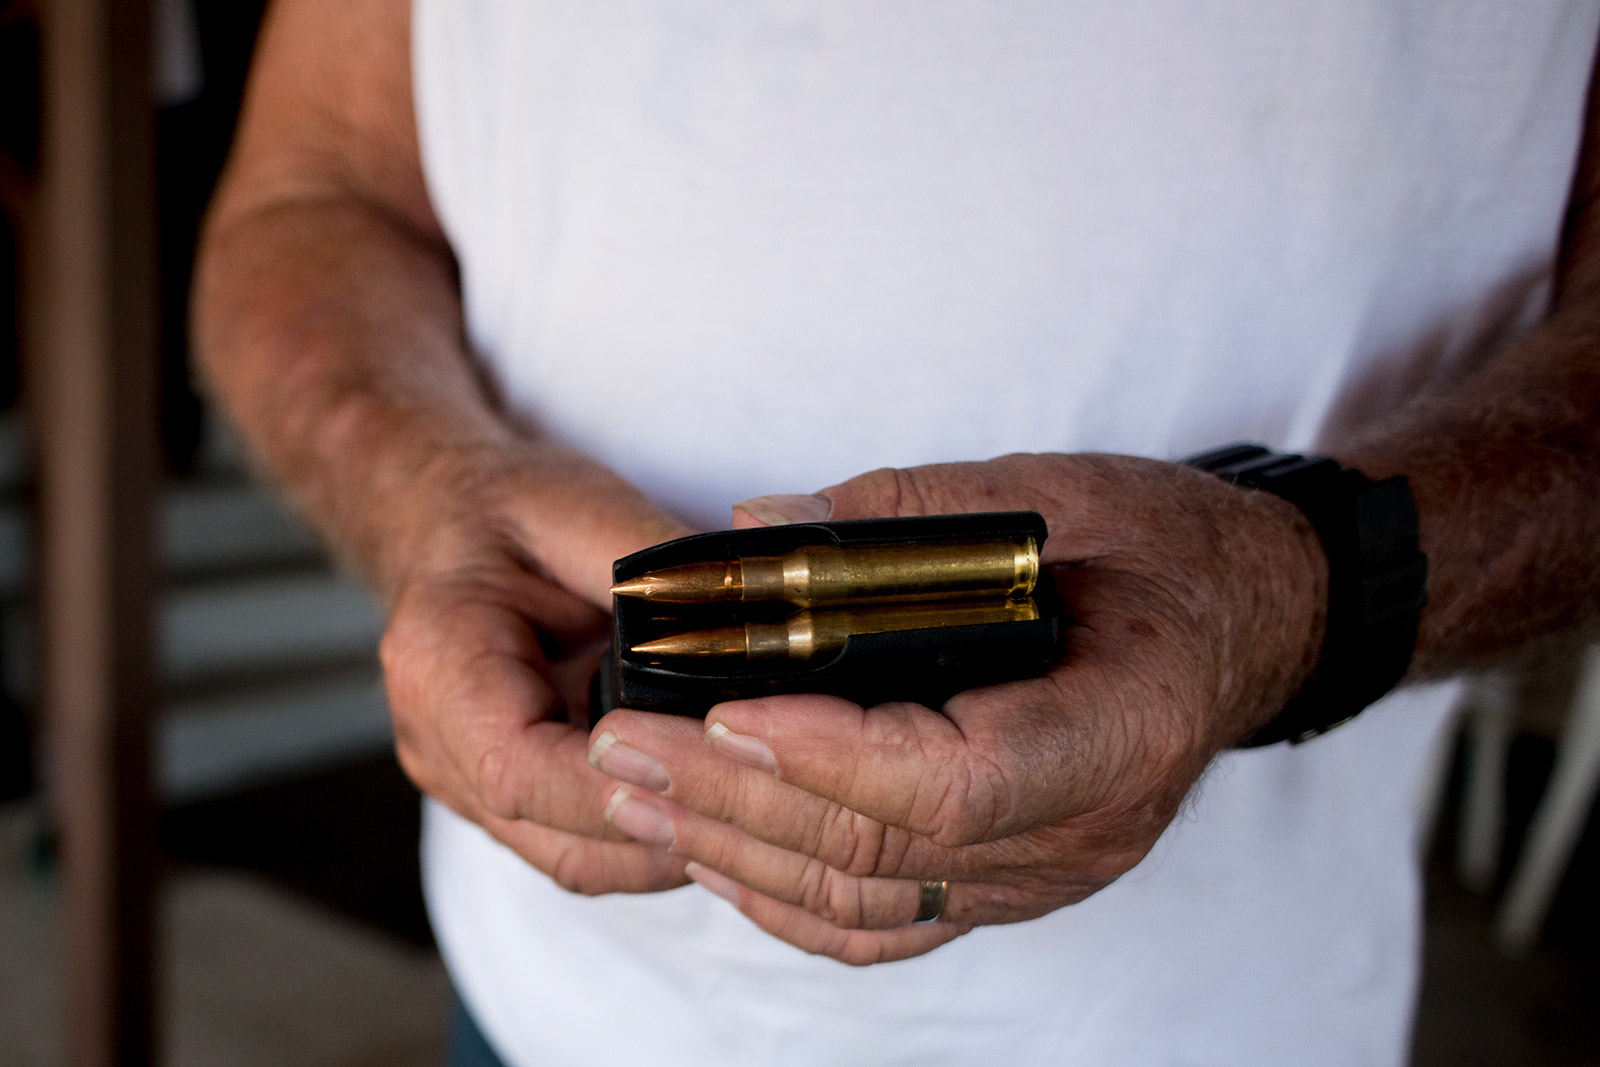 Bob Maupin holds a clip with .308-caliber ammunition for his AR-10, or ArmaLite Rifle, on Aug. 30, 2017, after touring his property in Boulevard, which is near the Mexican border. <em>(Brandon Quester/inewsource)</em>